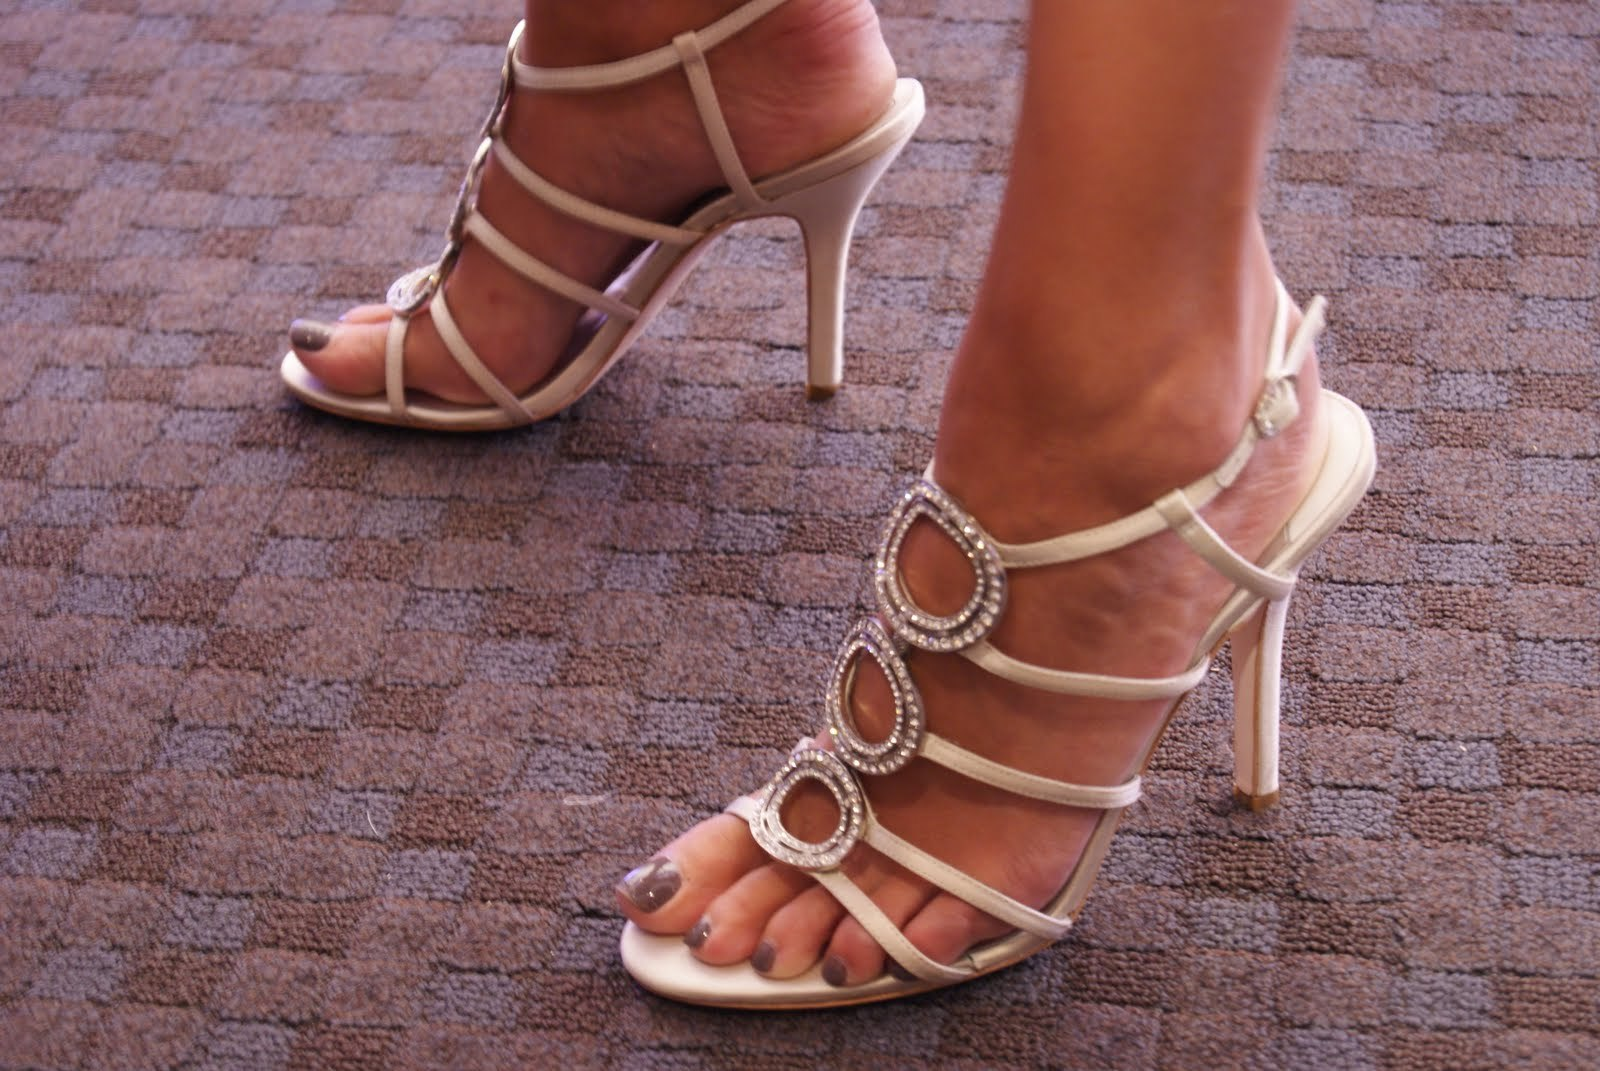 Ivanka Trump Beautiful Feet Image